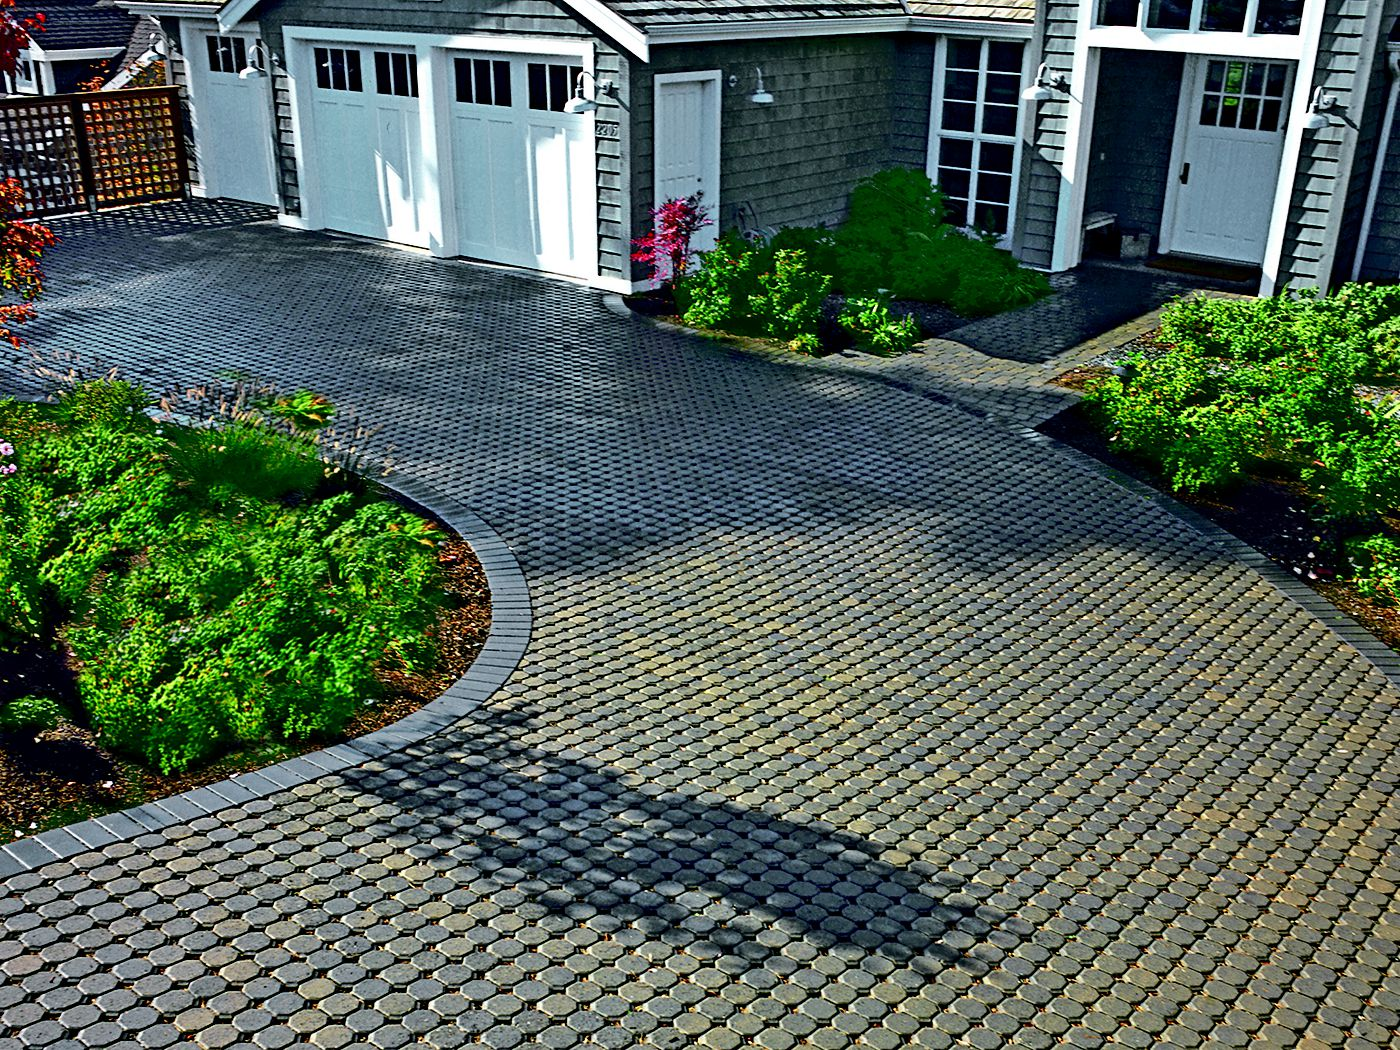 pervious pavers in a driveway